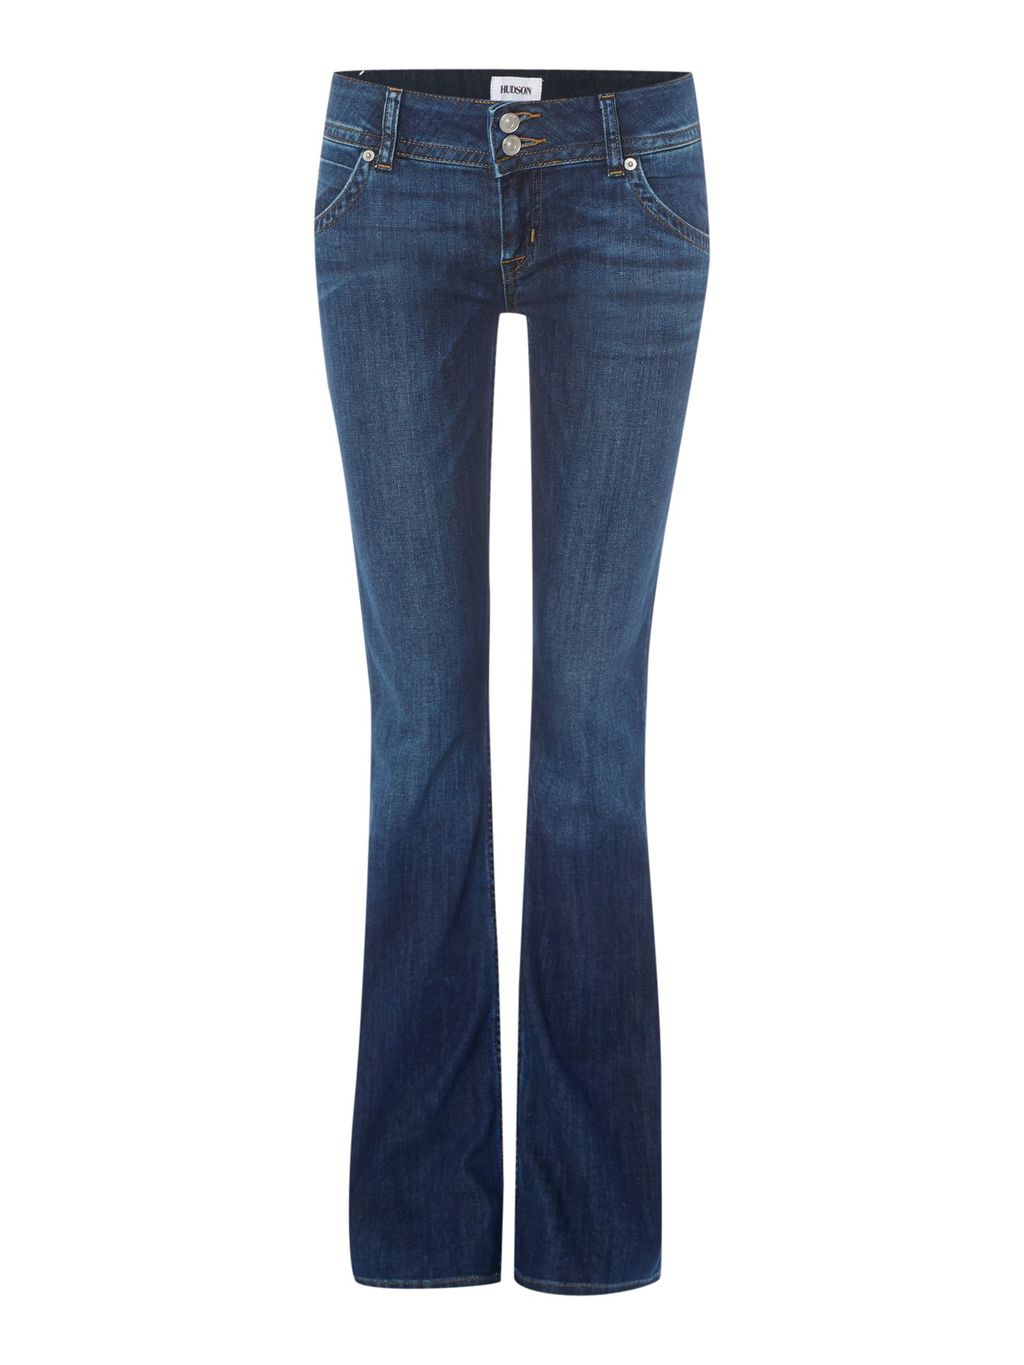 Signature Bootcut Jean In Enlightened, Denim Mid Wash - style: bootcut; length: standard; pattern: plain; pocket detail: traditional 5 pocket; waist: mid/regular rise; predominant colour: denim; occasions: casual; fibres: cotton - stretch; texture group: denim; pattern type: fabric; season: a/w 2015; wardrobe: basic